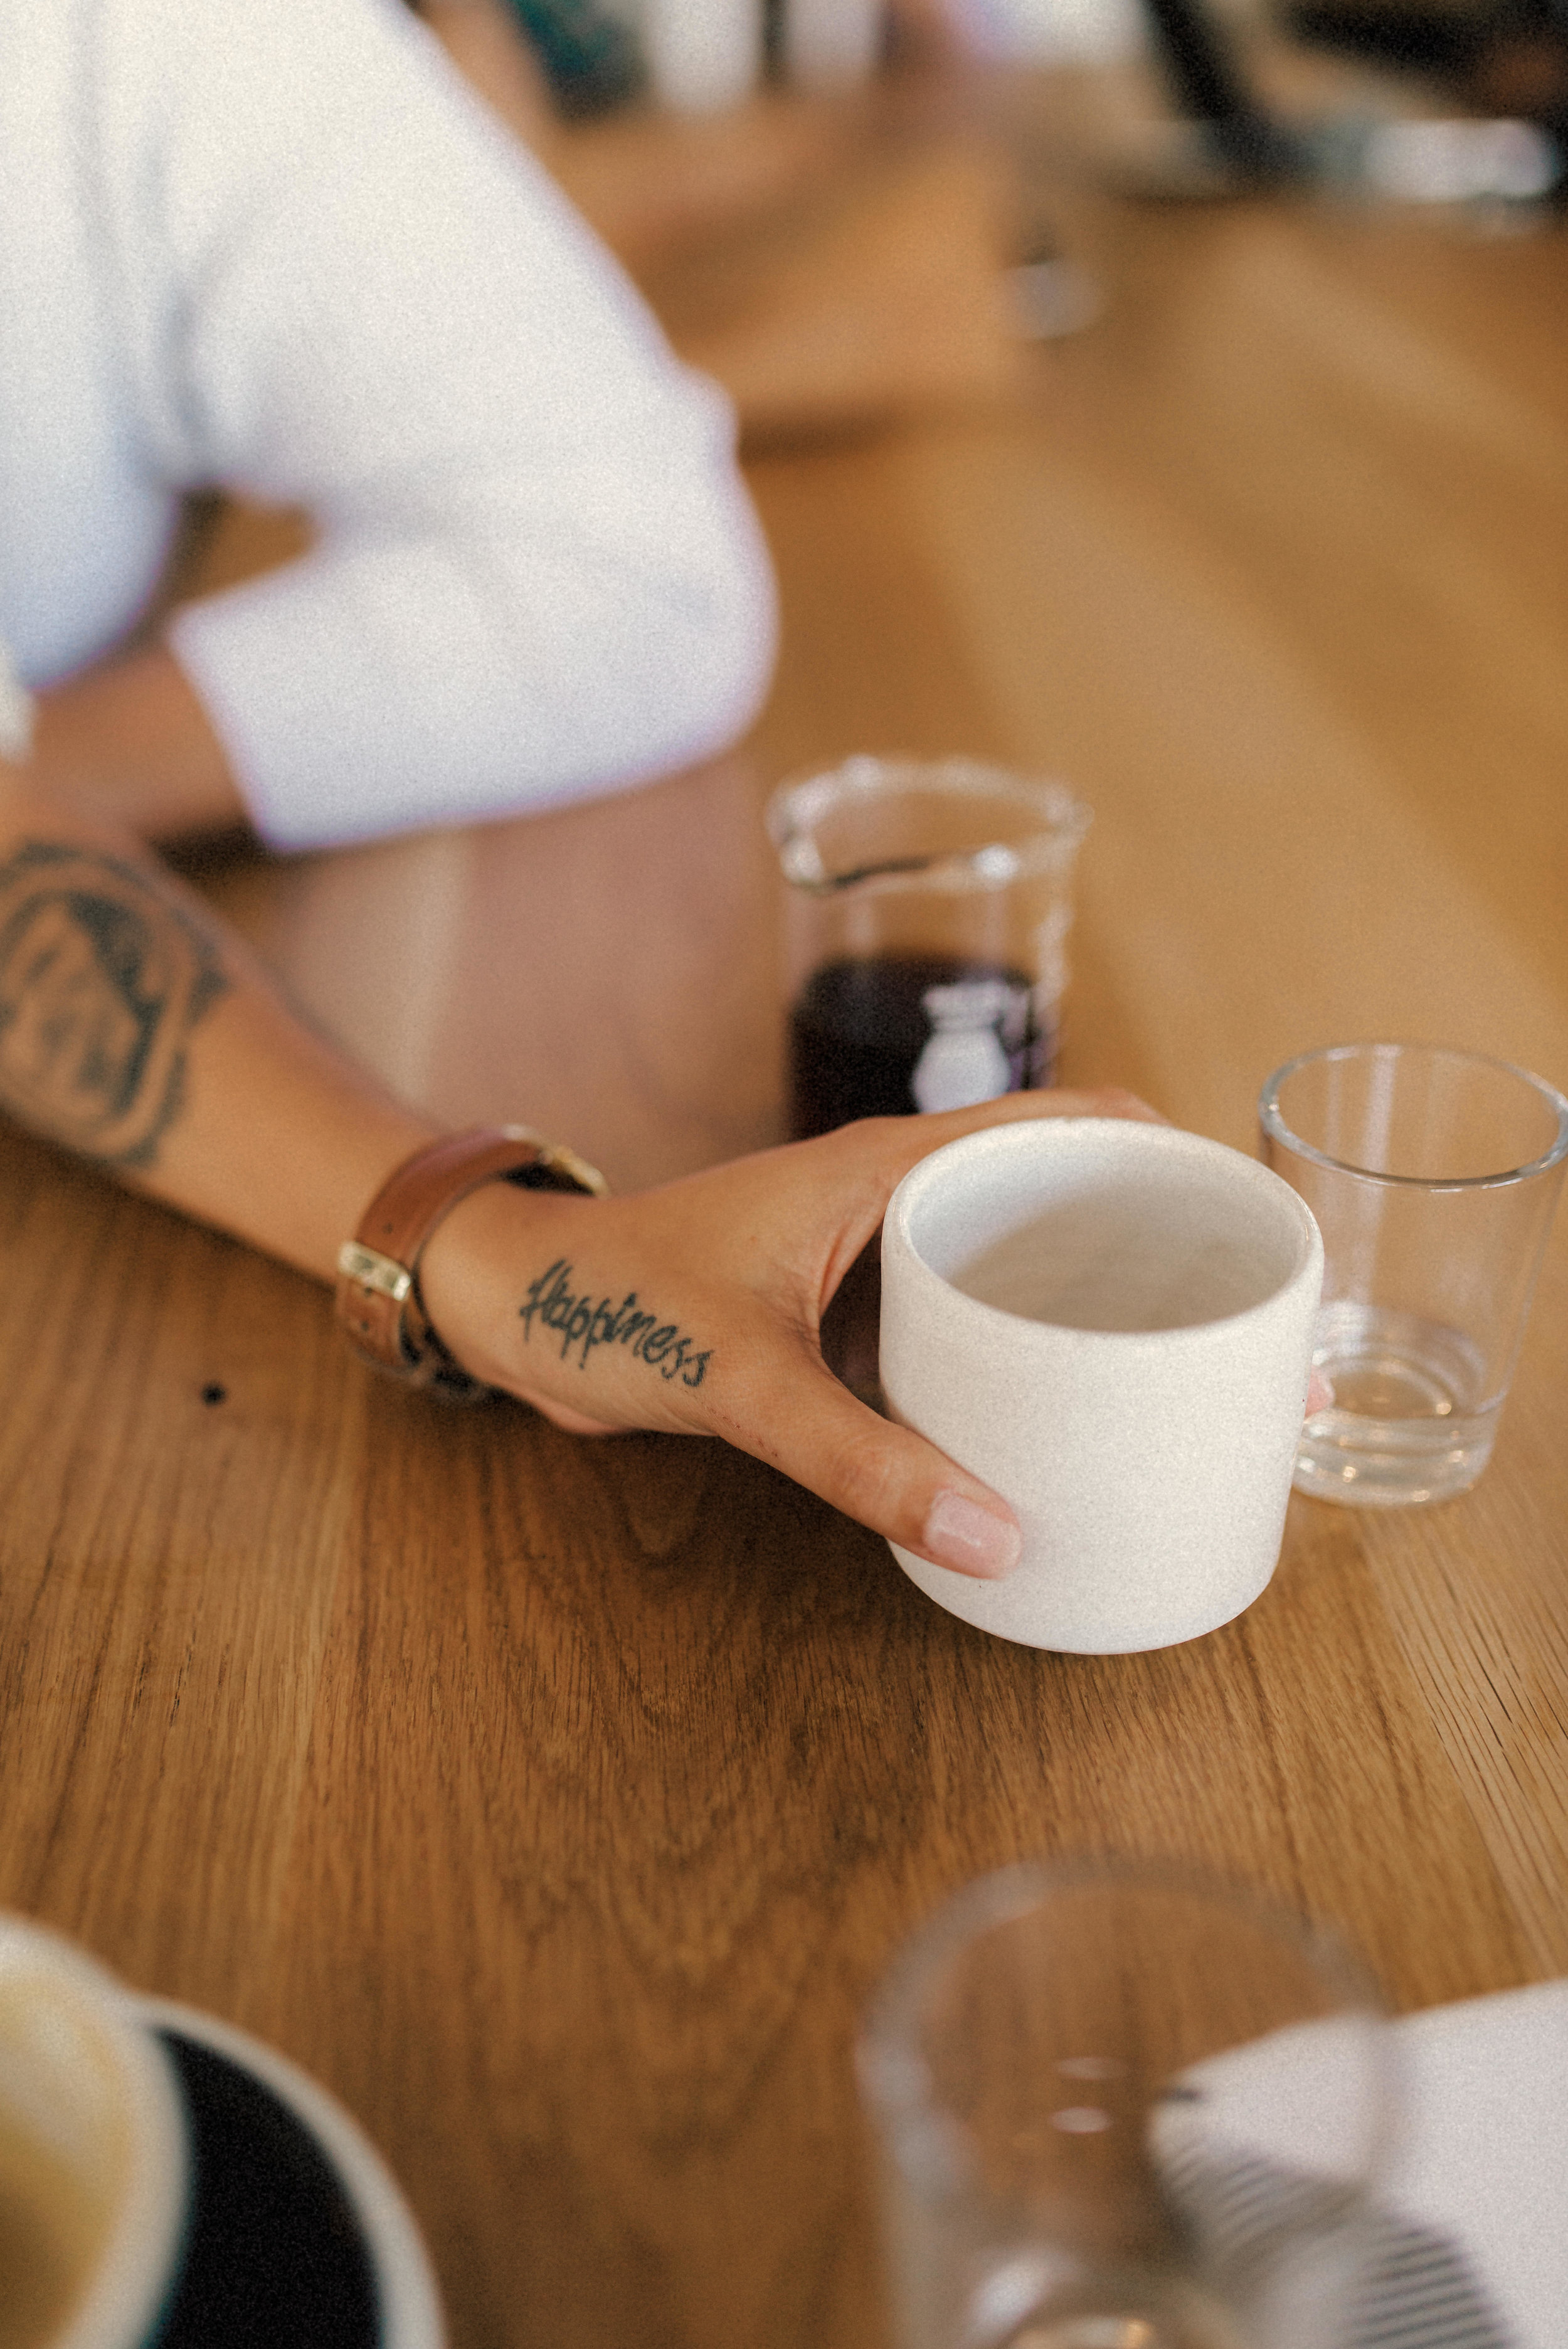 a tattoo on Hillary's hand as she reaches for her coffee - Bandit Coffee - St Pete Florida - Naples Florida Wedding Photographer - Tampa Wedding Photographer